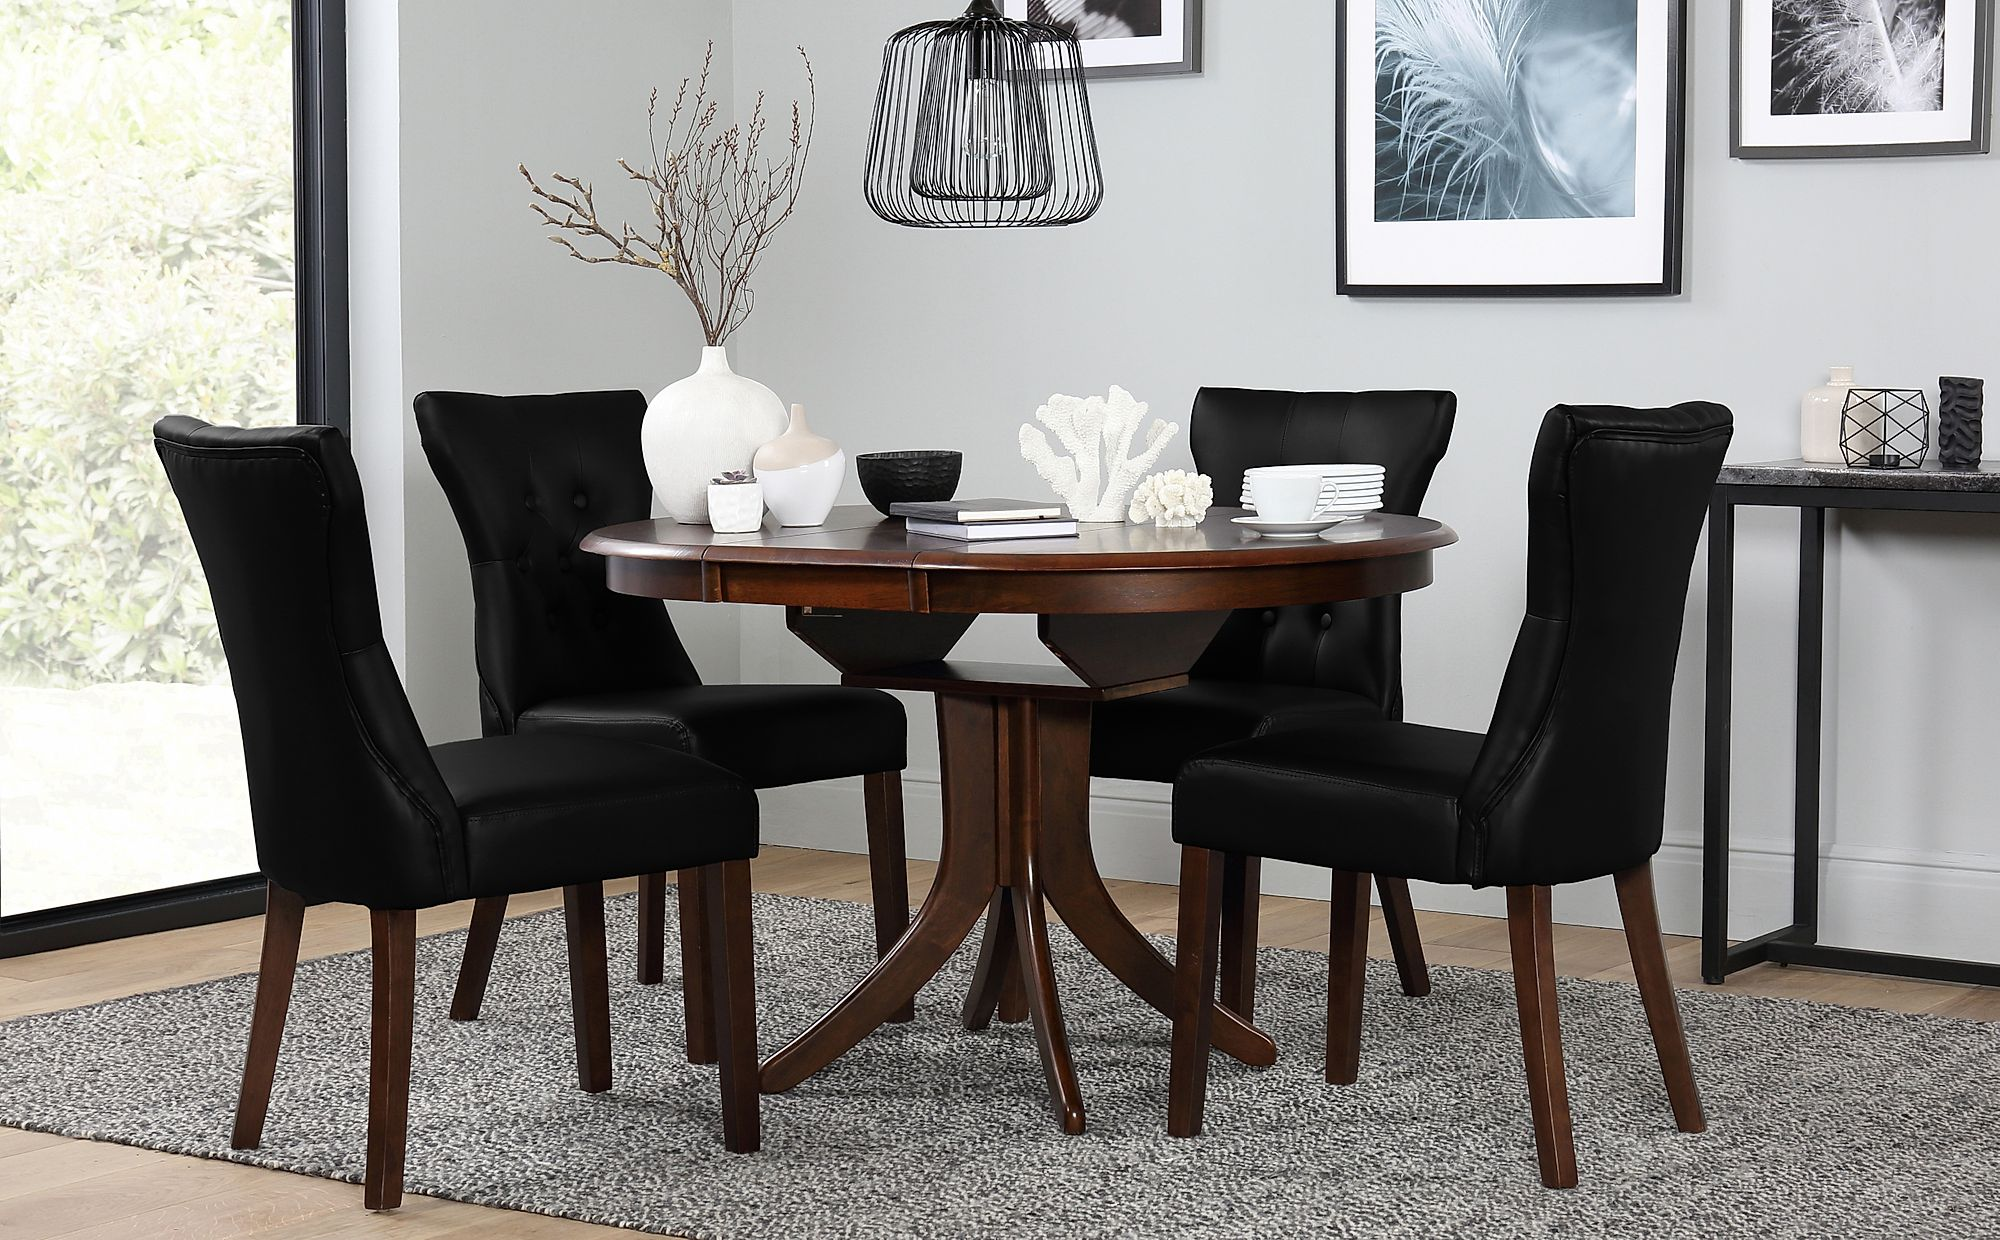 Remarkable Hudson Round Dark Wood Extending Dining Table With 6 Bewley Black Chairs Onthecornerstone Fun Painted Chair Ideas Images Onthecornerstoneorg